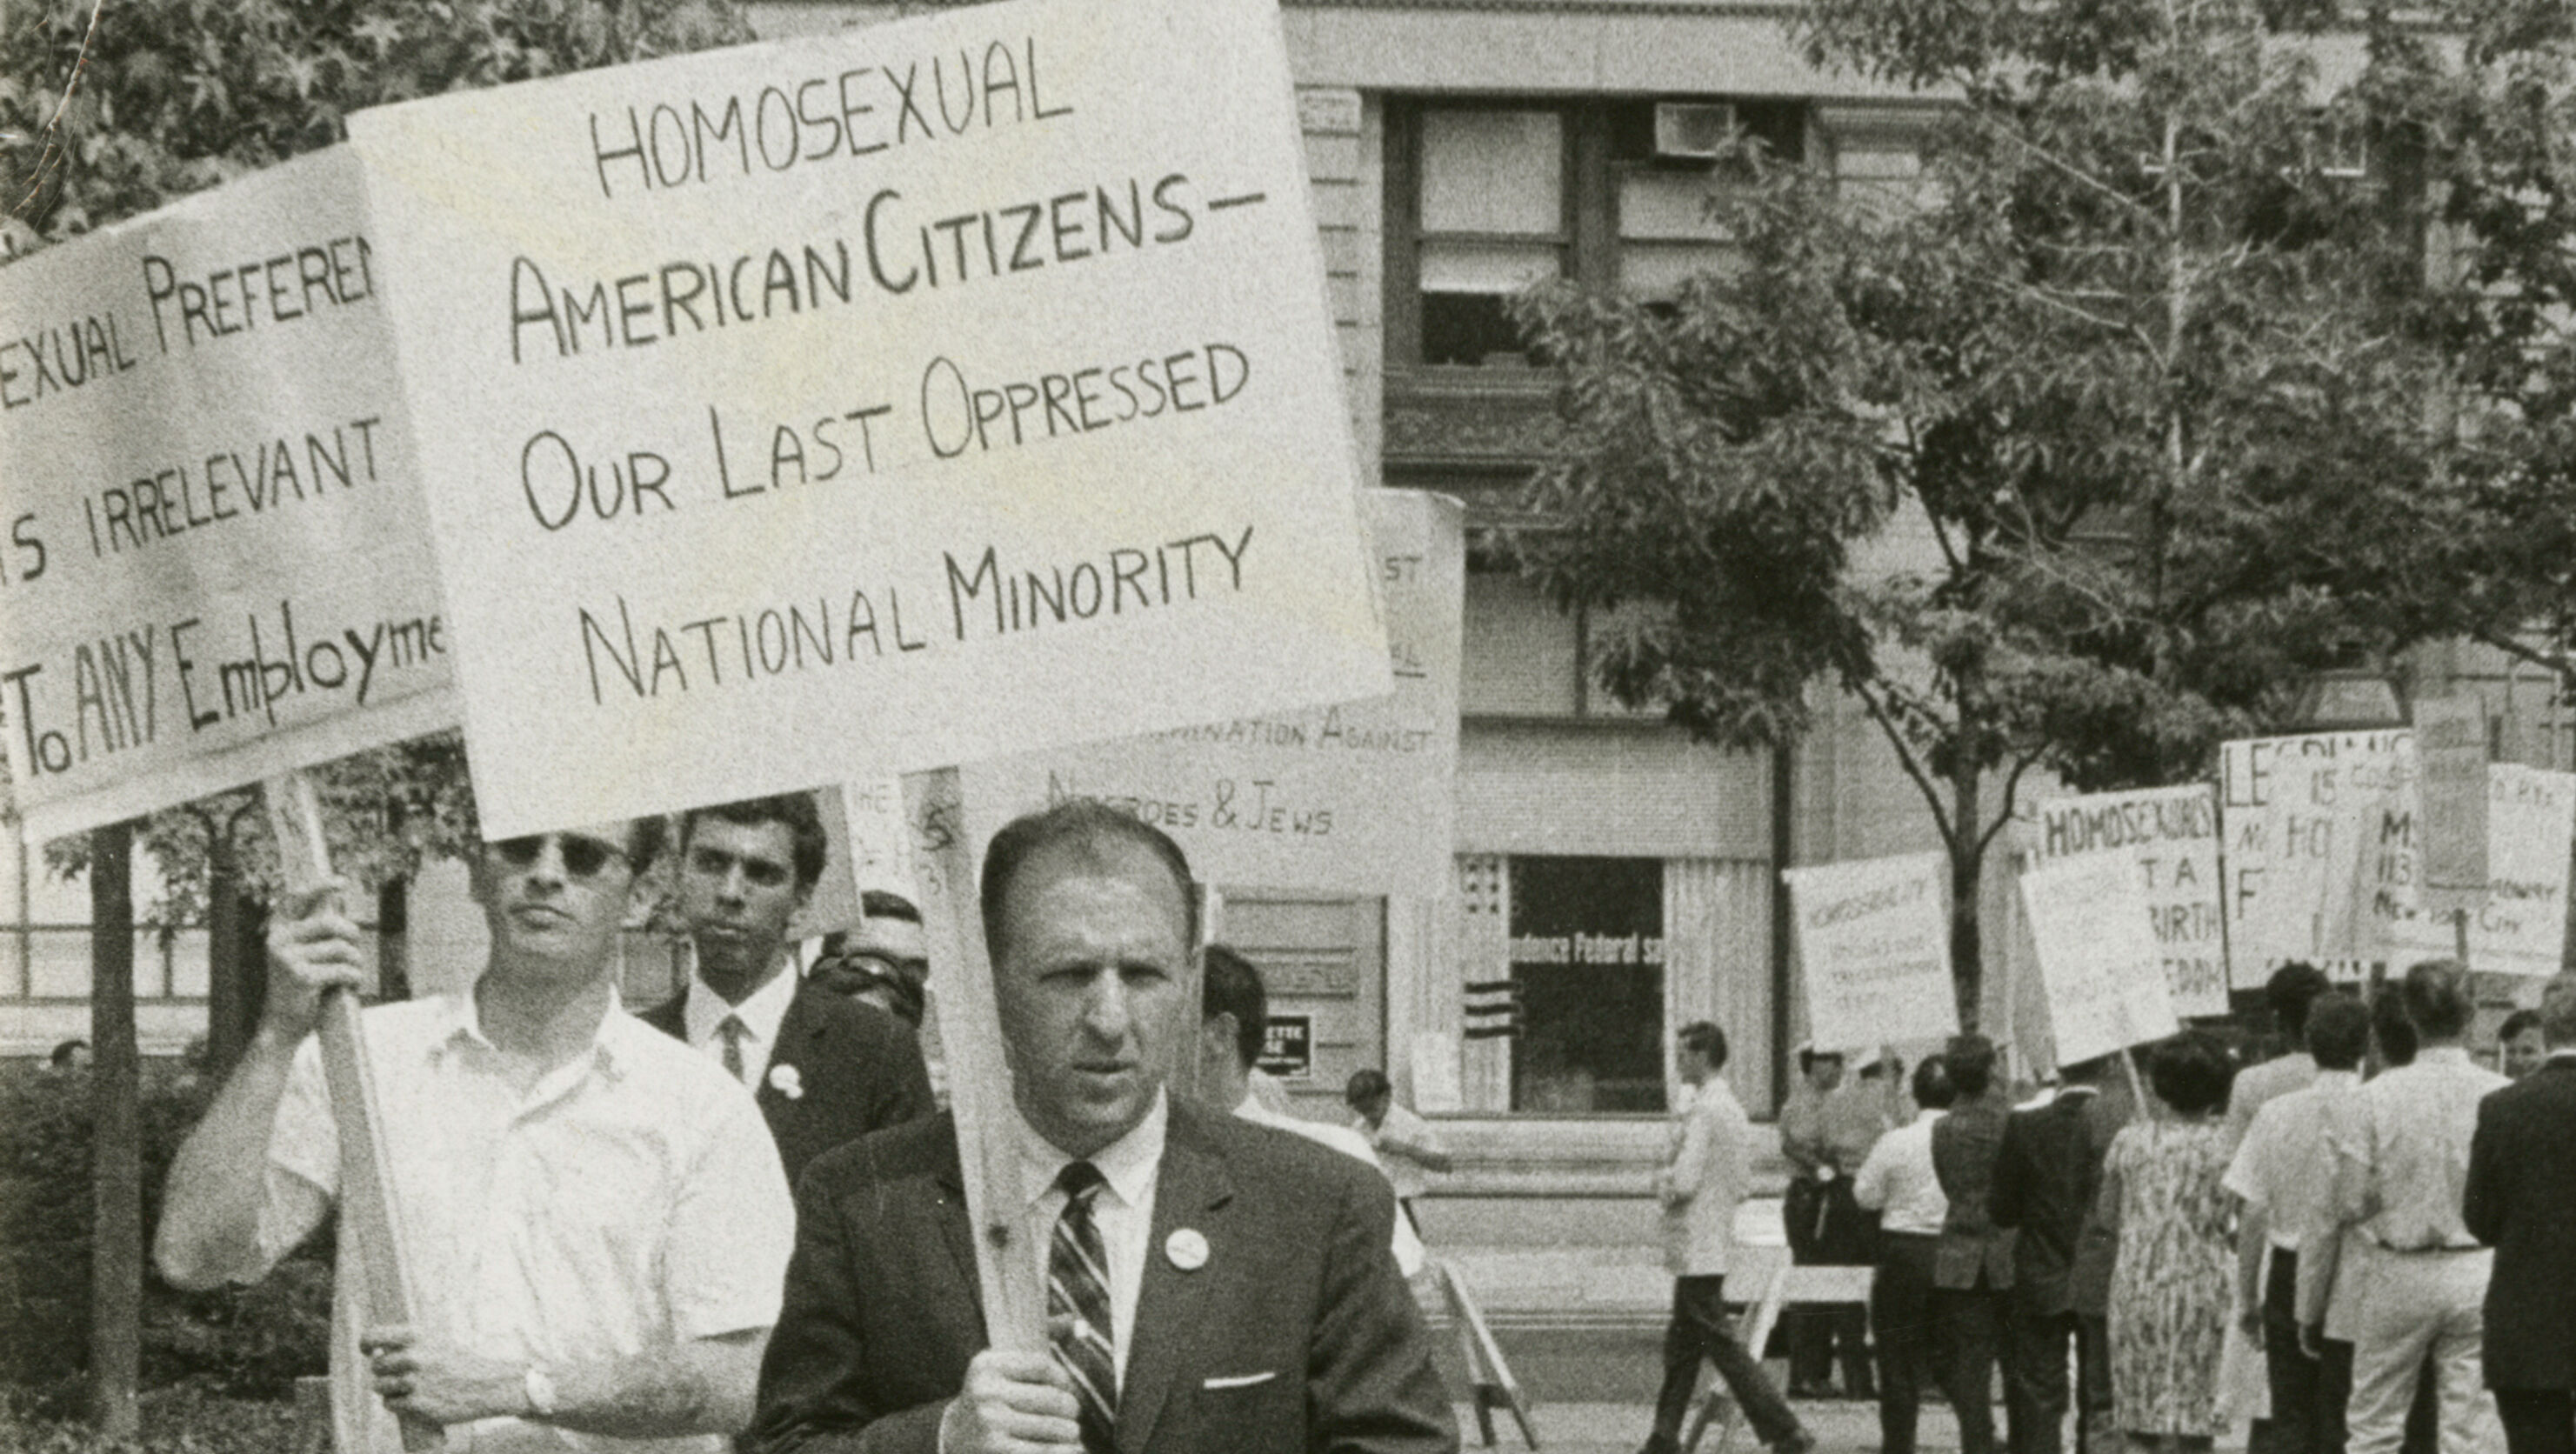 Frank Kameny leads a picket line in front of Independence Hall in Philadelphia on July 4, 1965.